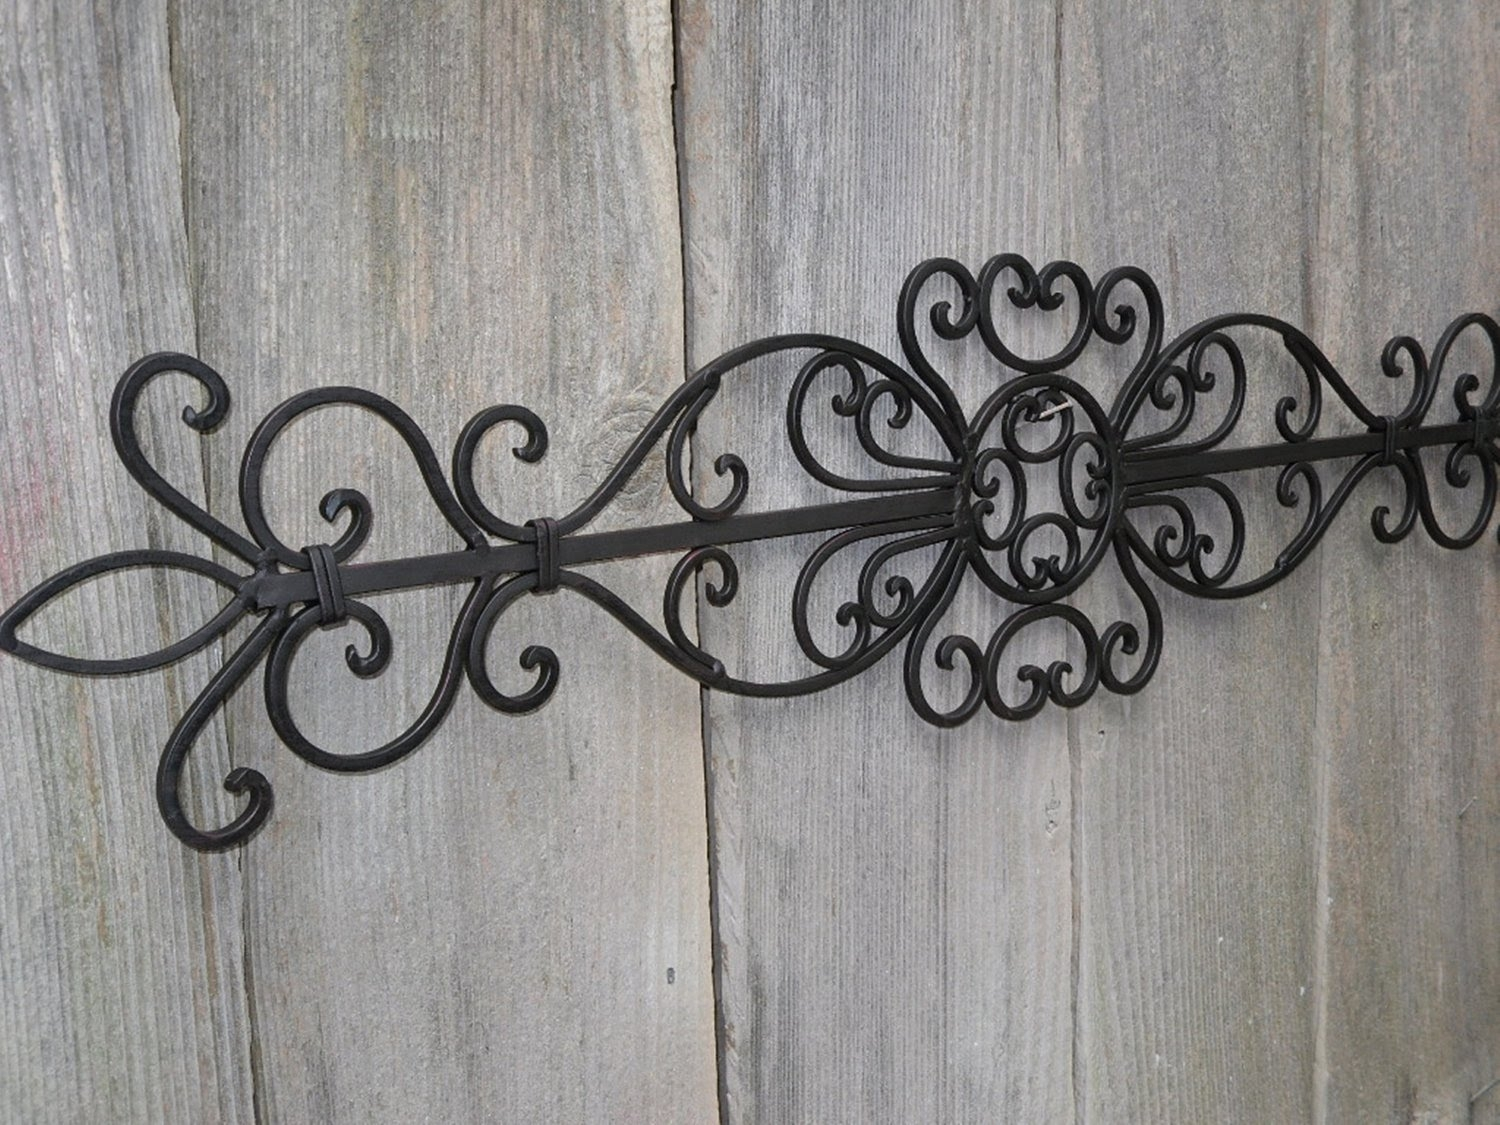 Wrought Iron Wall Decor # Wrought Iron Wall Art Decor, Iron Wall Inside Metal Wall Art Decors (View 8 of 20)